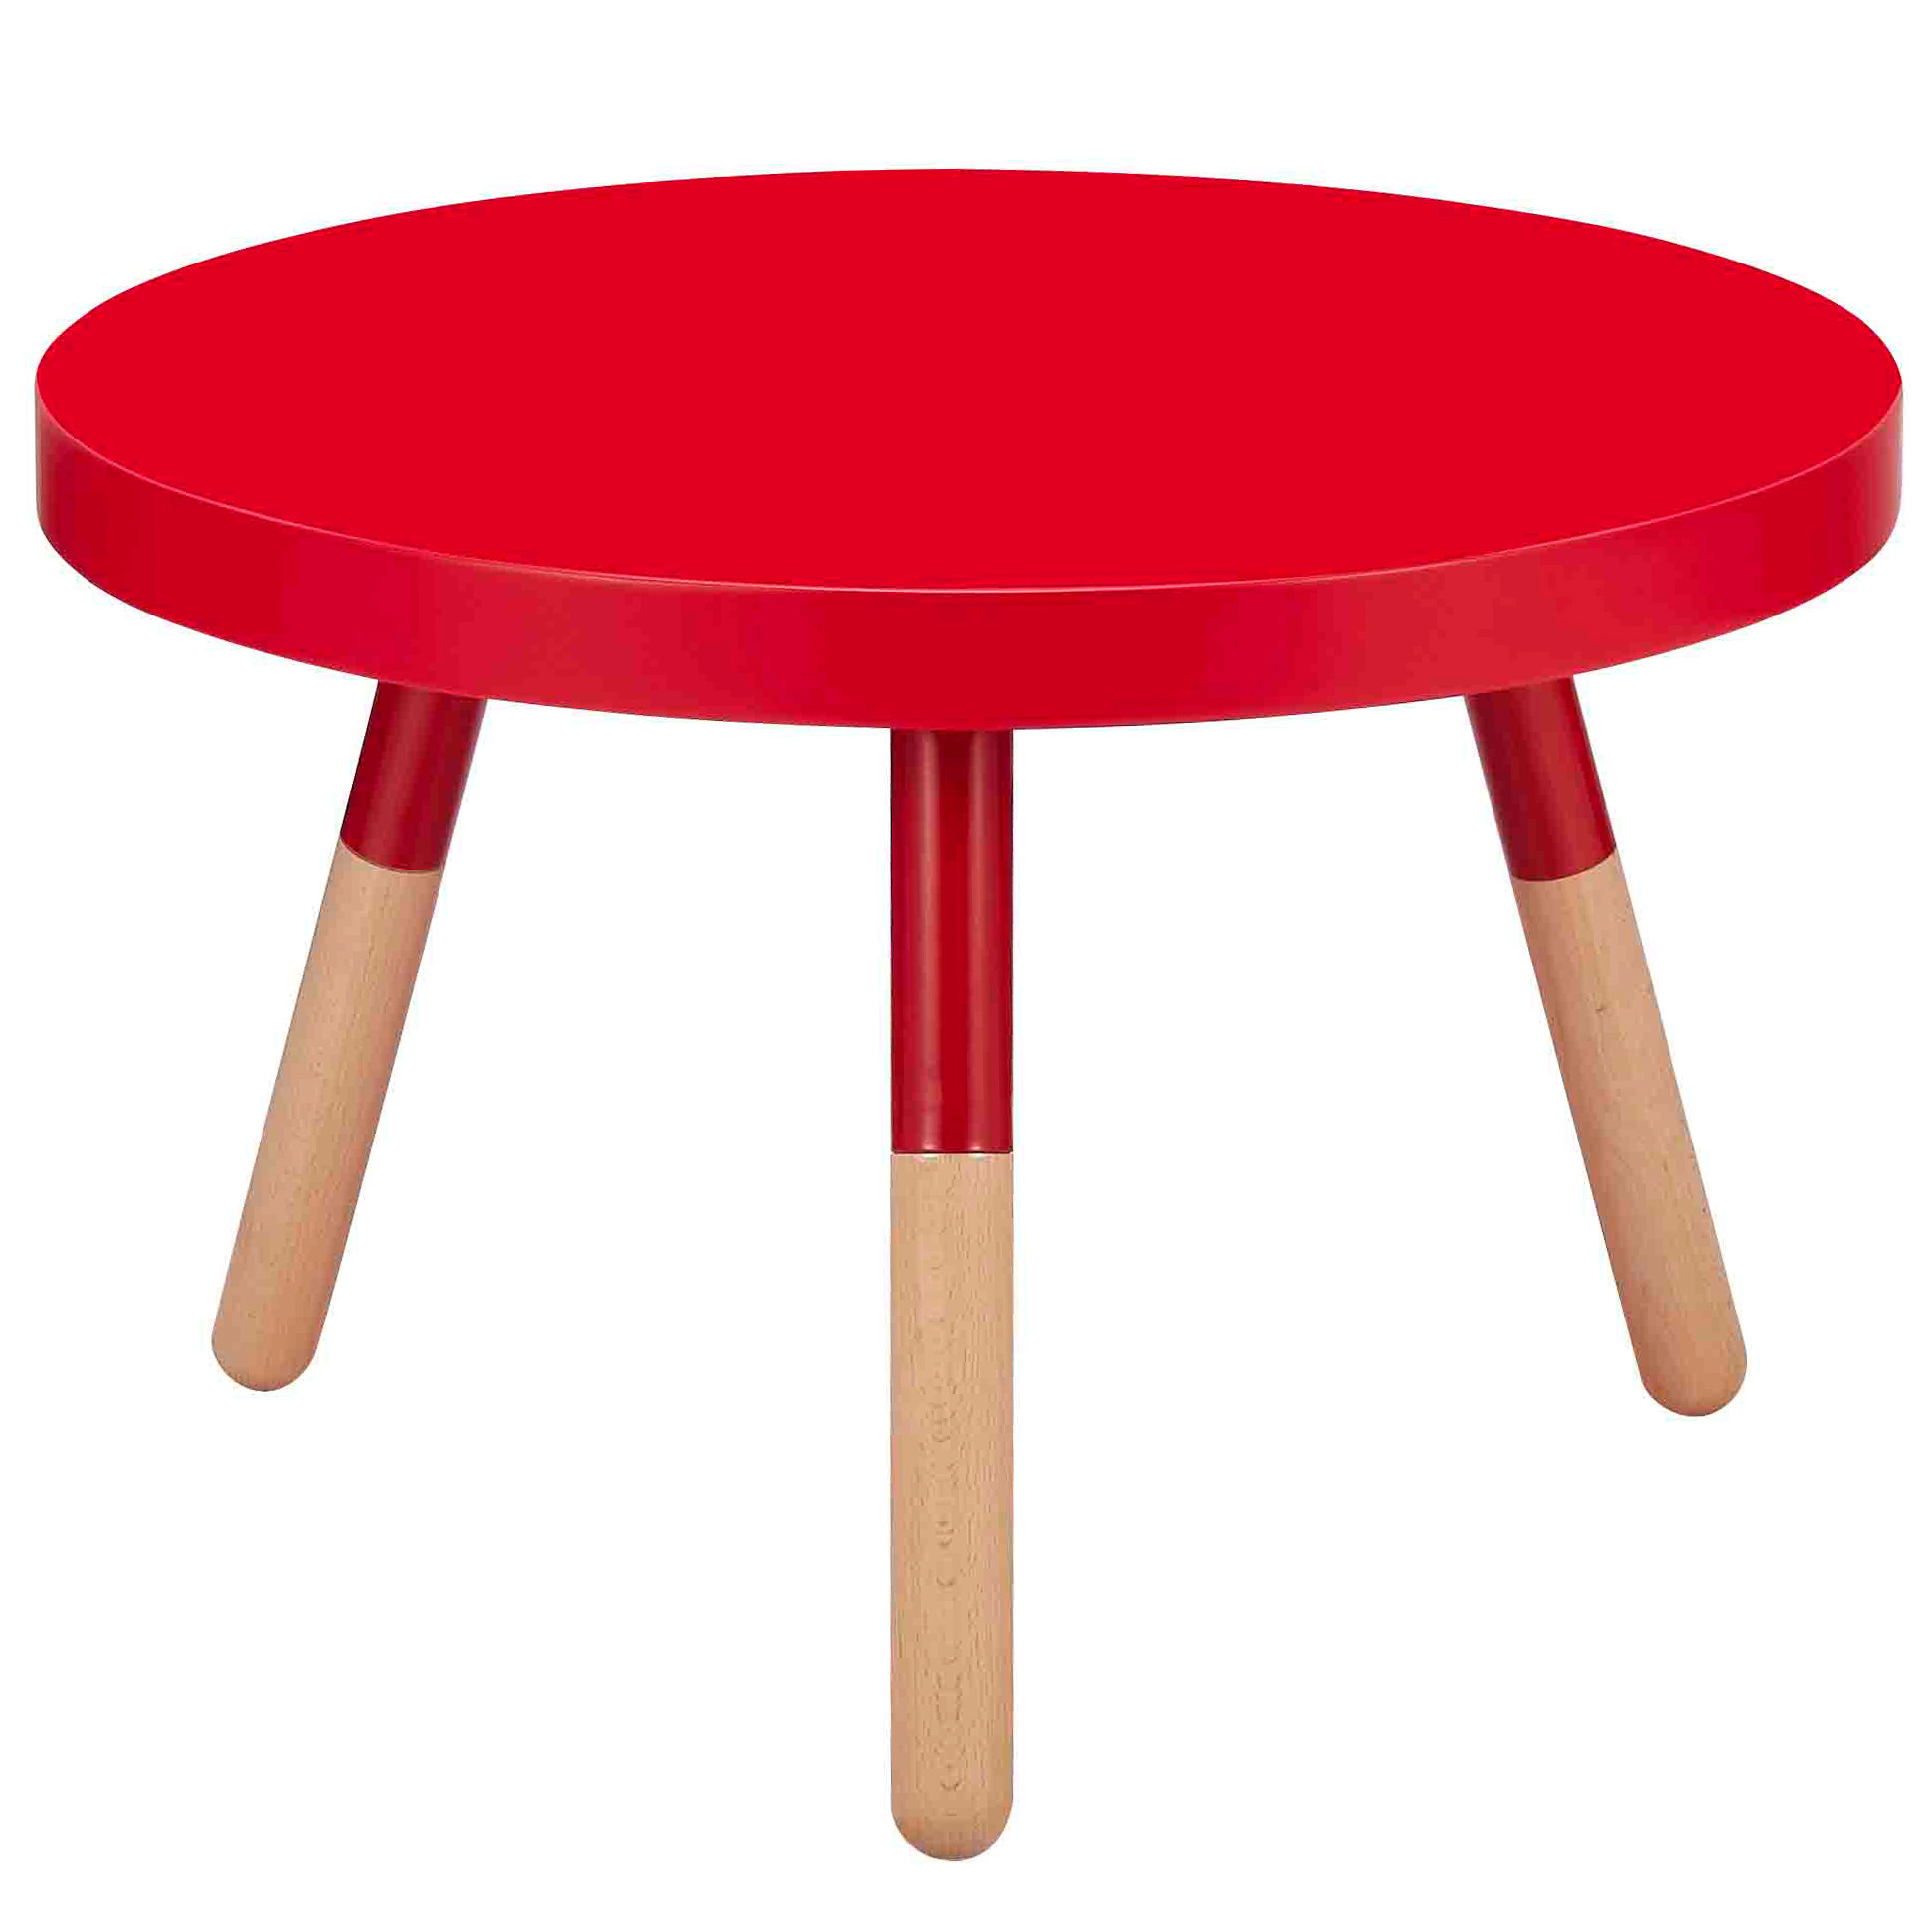 New skane round coffee table ebay for New coffee table